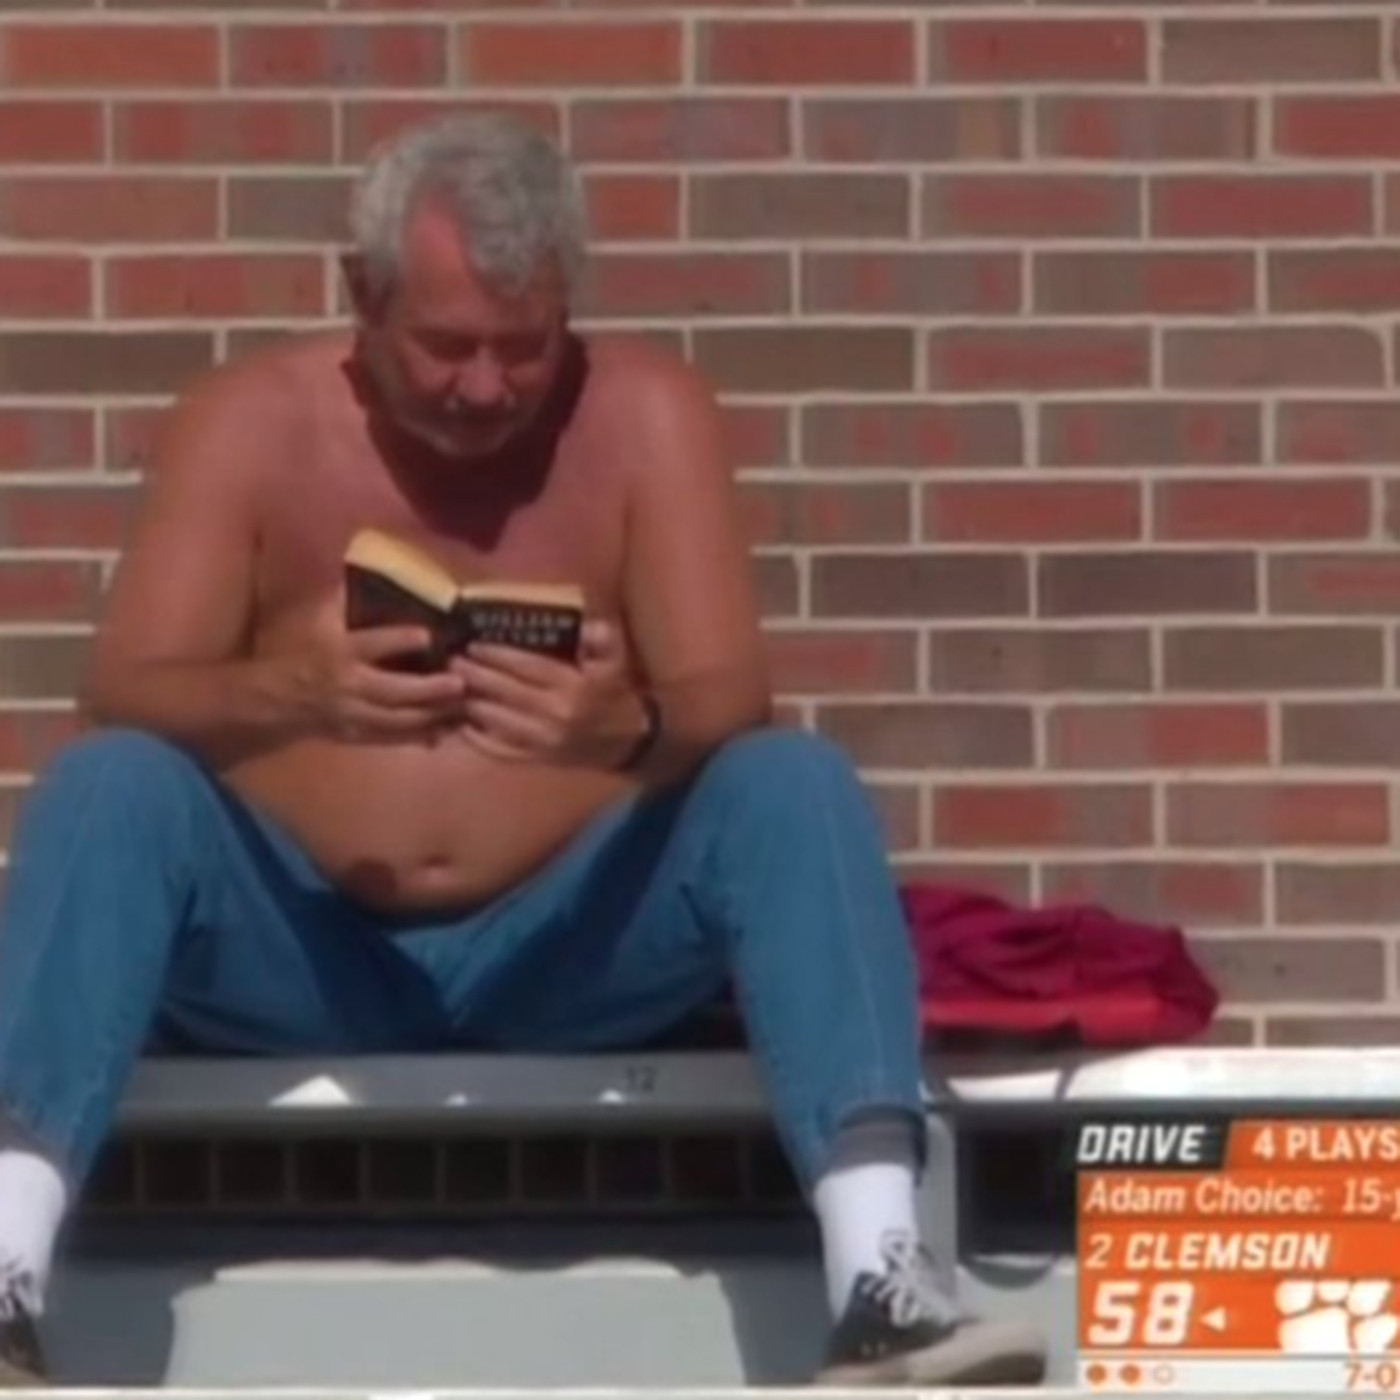 Shirtless Fsu Book Guy Meme Even Better Once You See What Hes